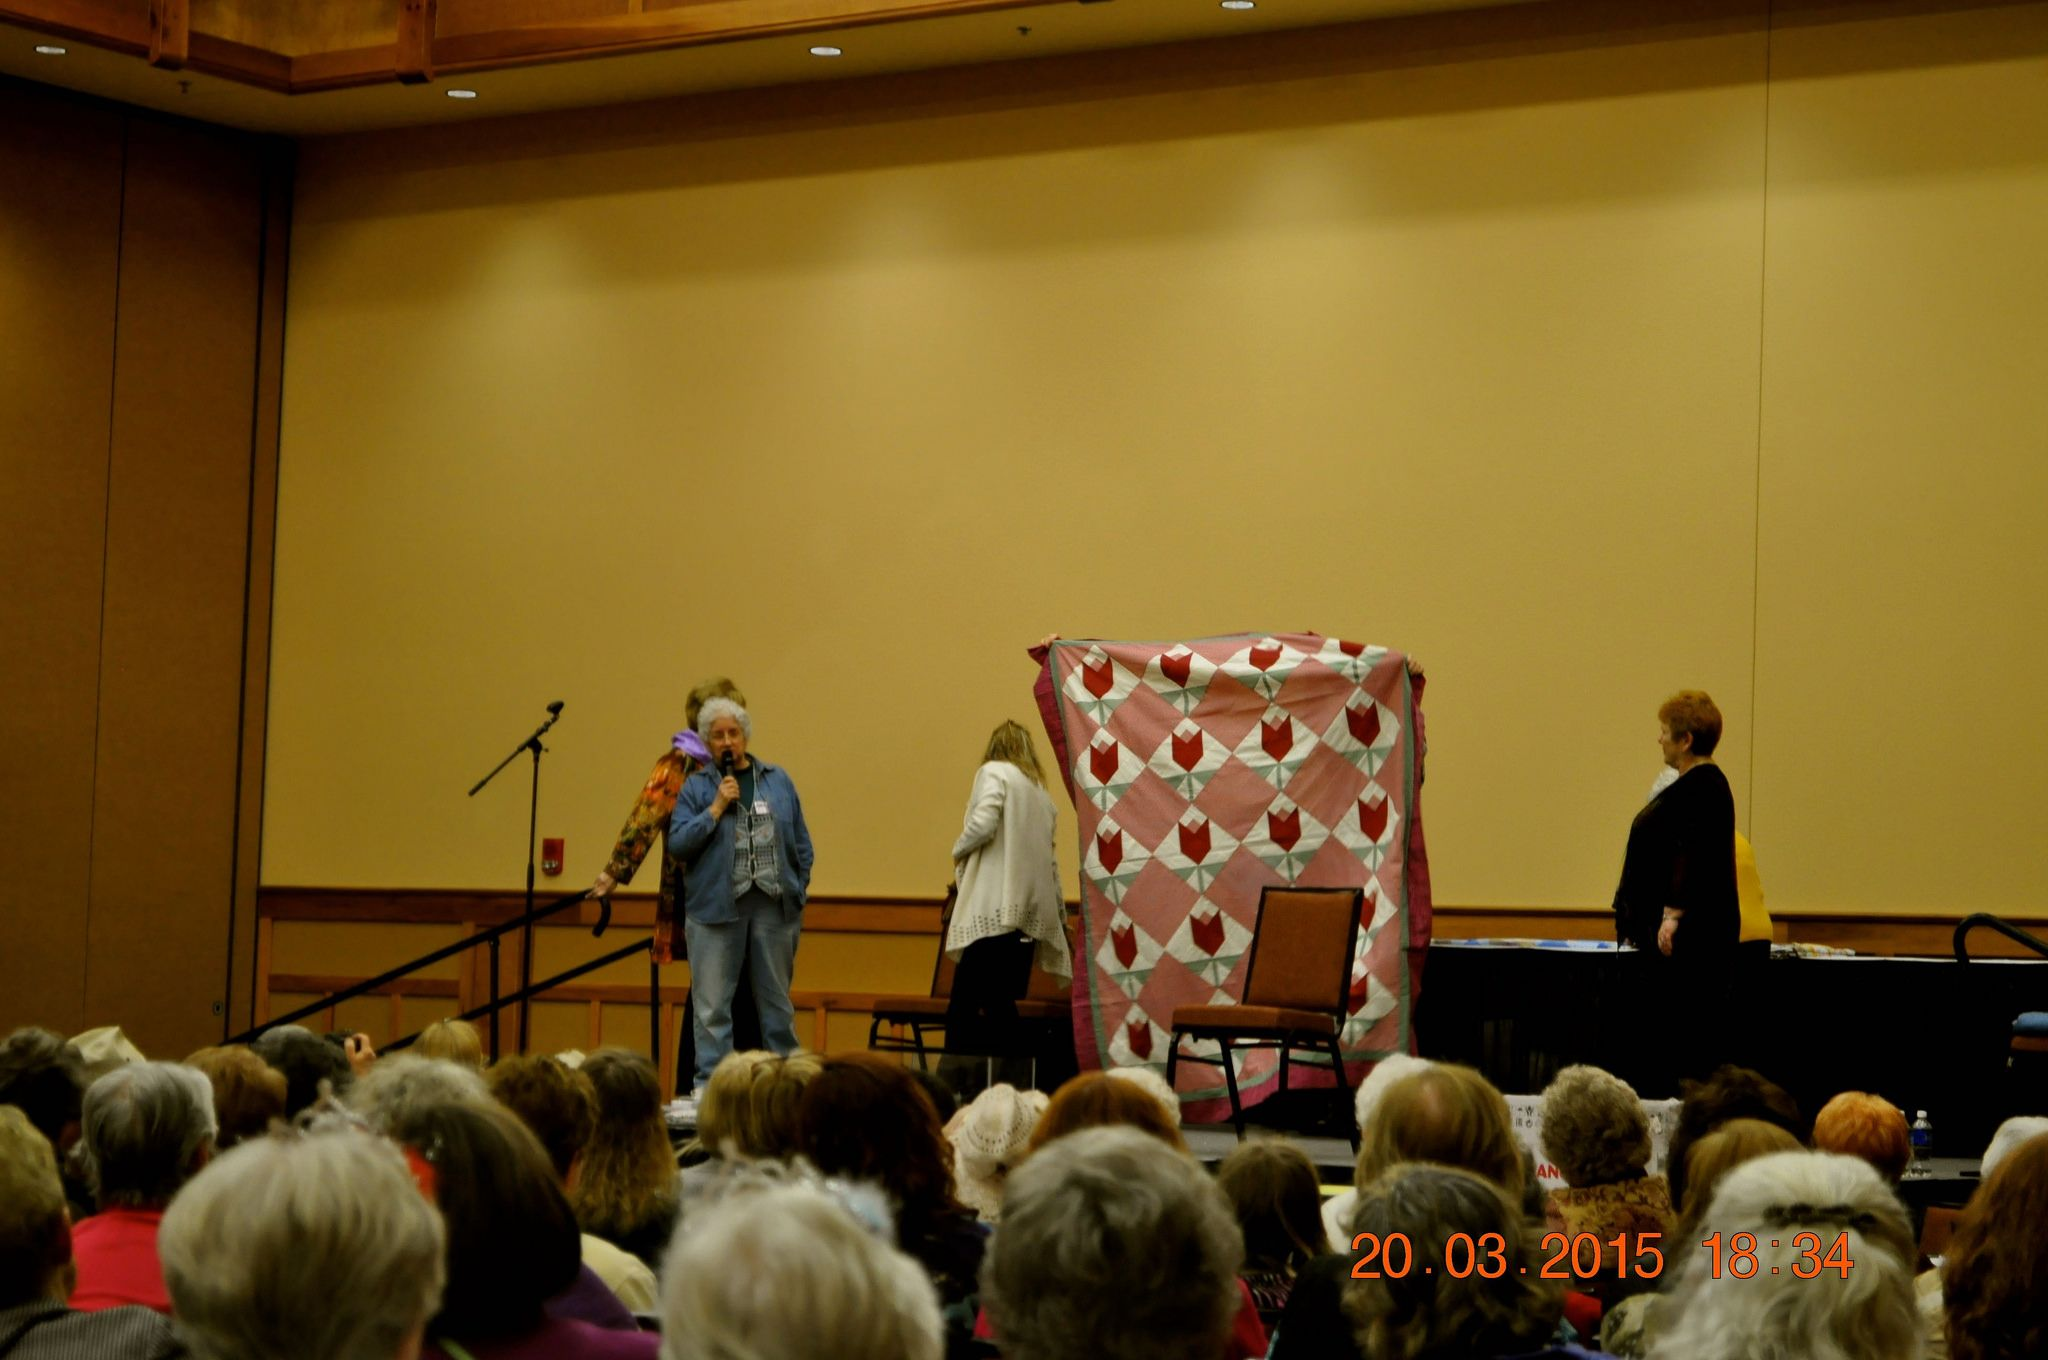 https://flic.kr/p/rKtkFB   2015 March 20 Quilt Show in Leconte Convention Center Pigeon Forge, Tn   2015 March 20 Quilt Show in Leconte Convention Center Pigeon Forge, Tn